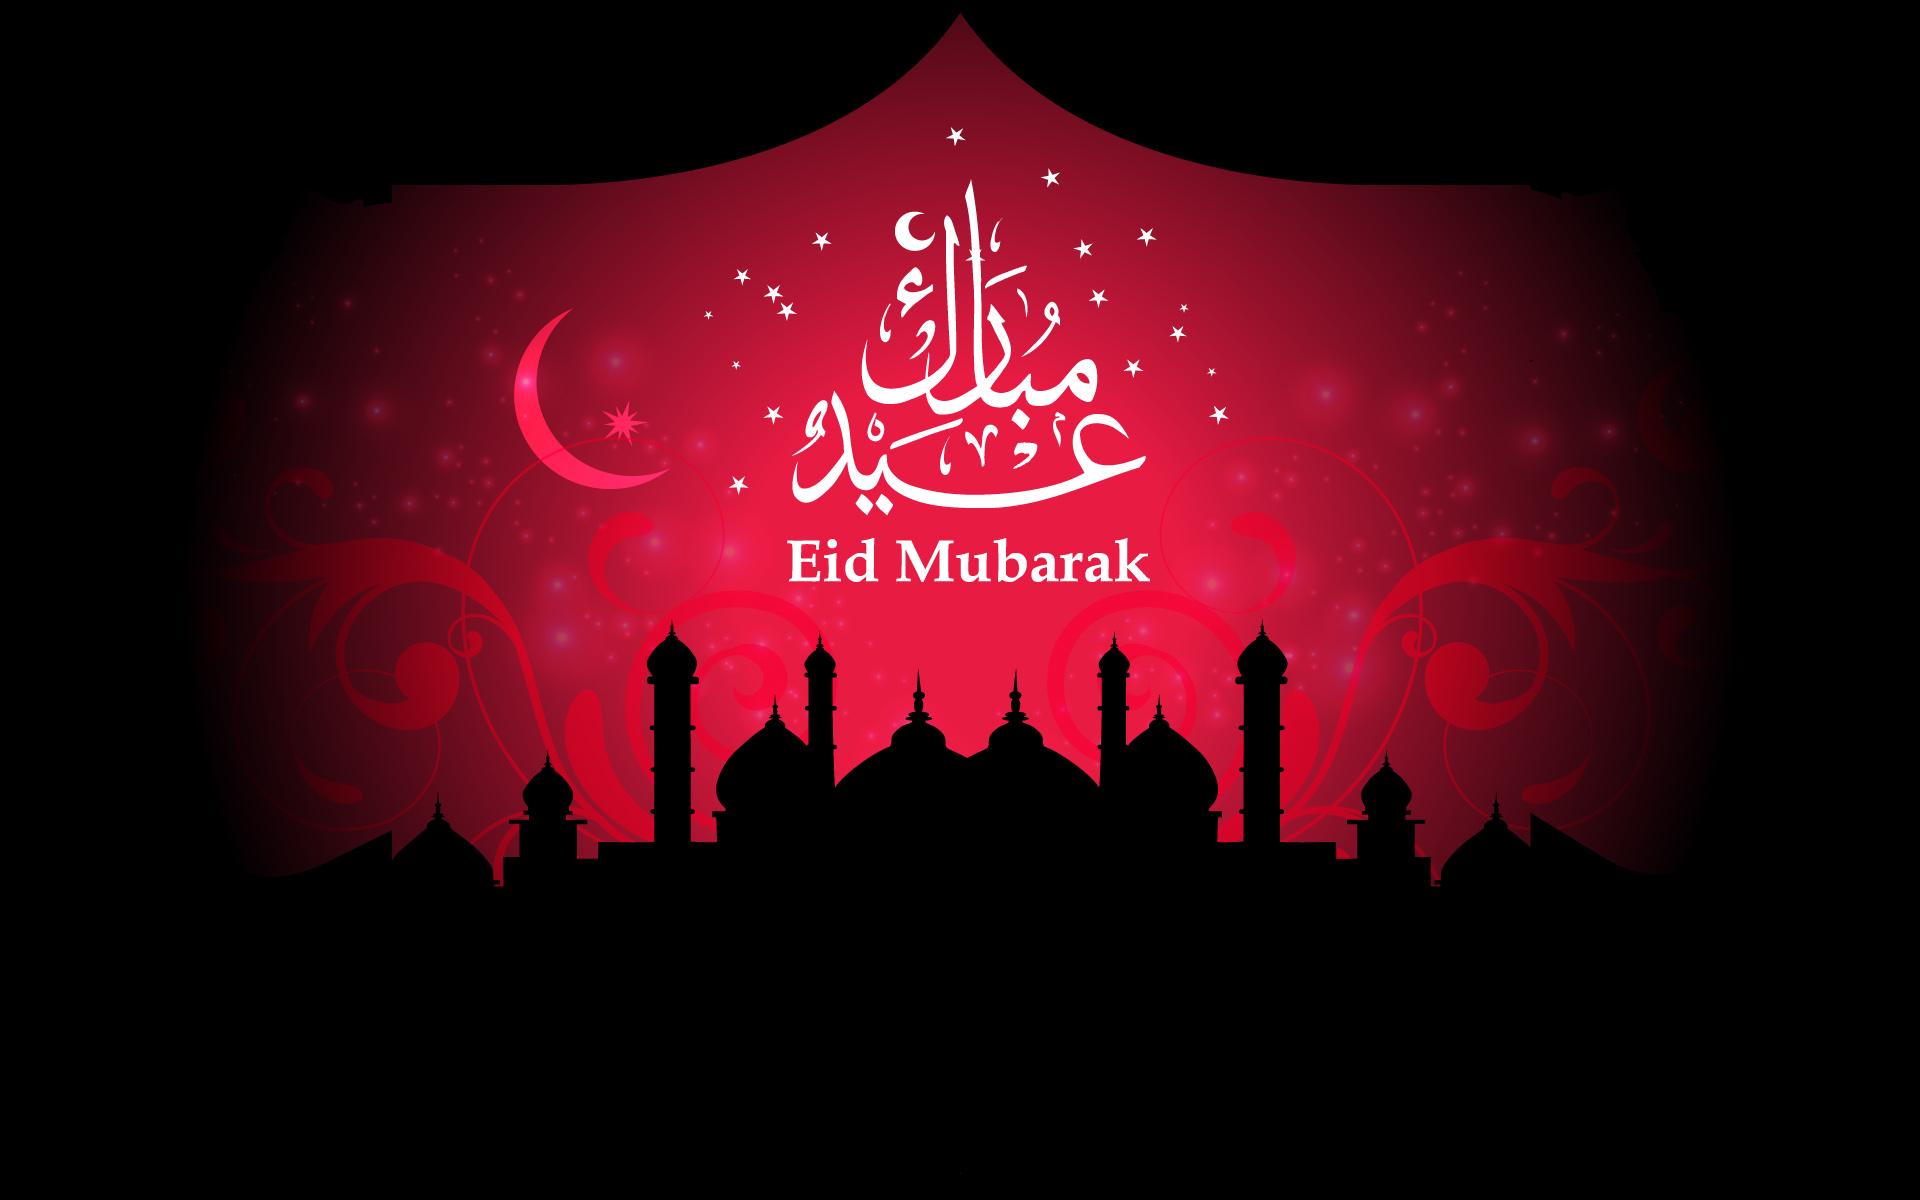 Eid Mubarak Bakrid Greeting Wishes